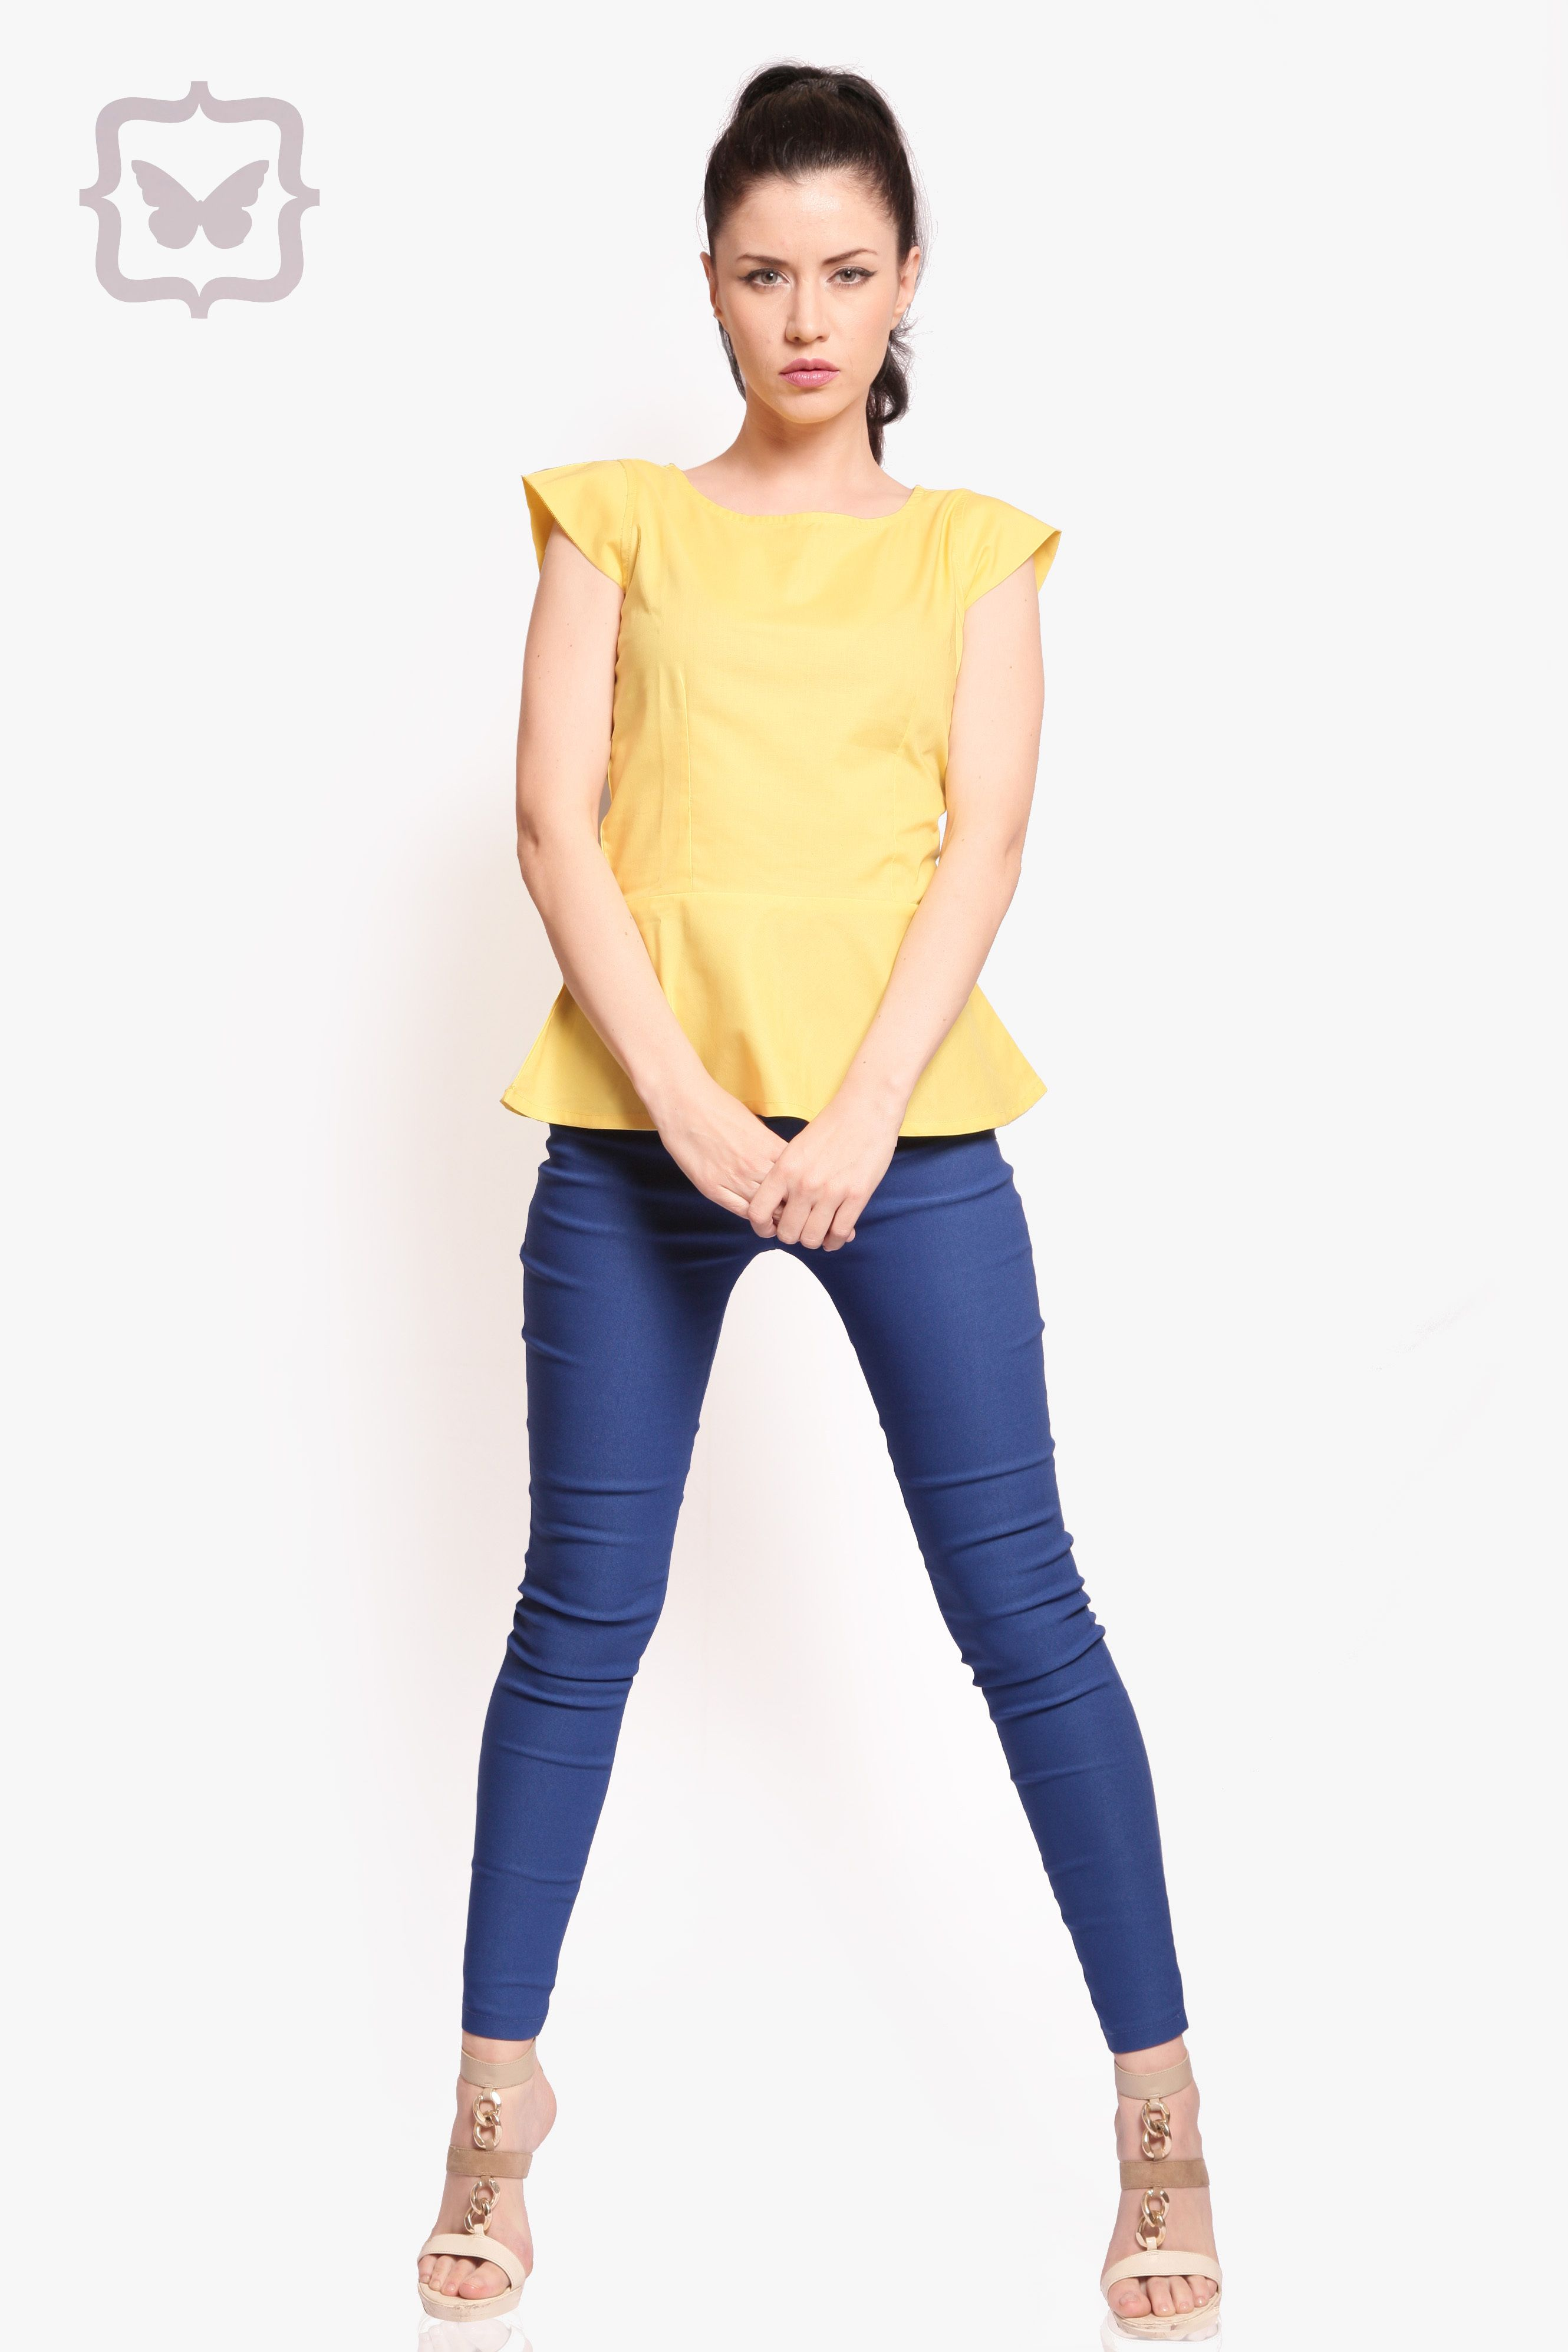 4828ec93fe477 A lemon yellow peplum top paired with electric blue jeggings. In color  block heaven!